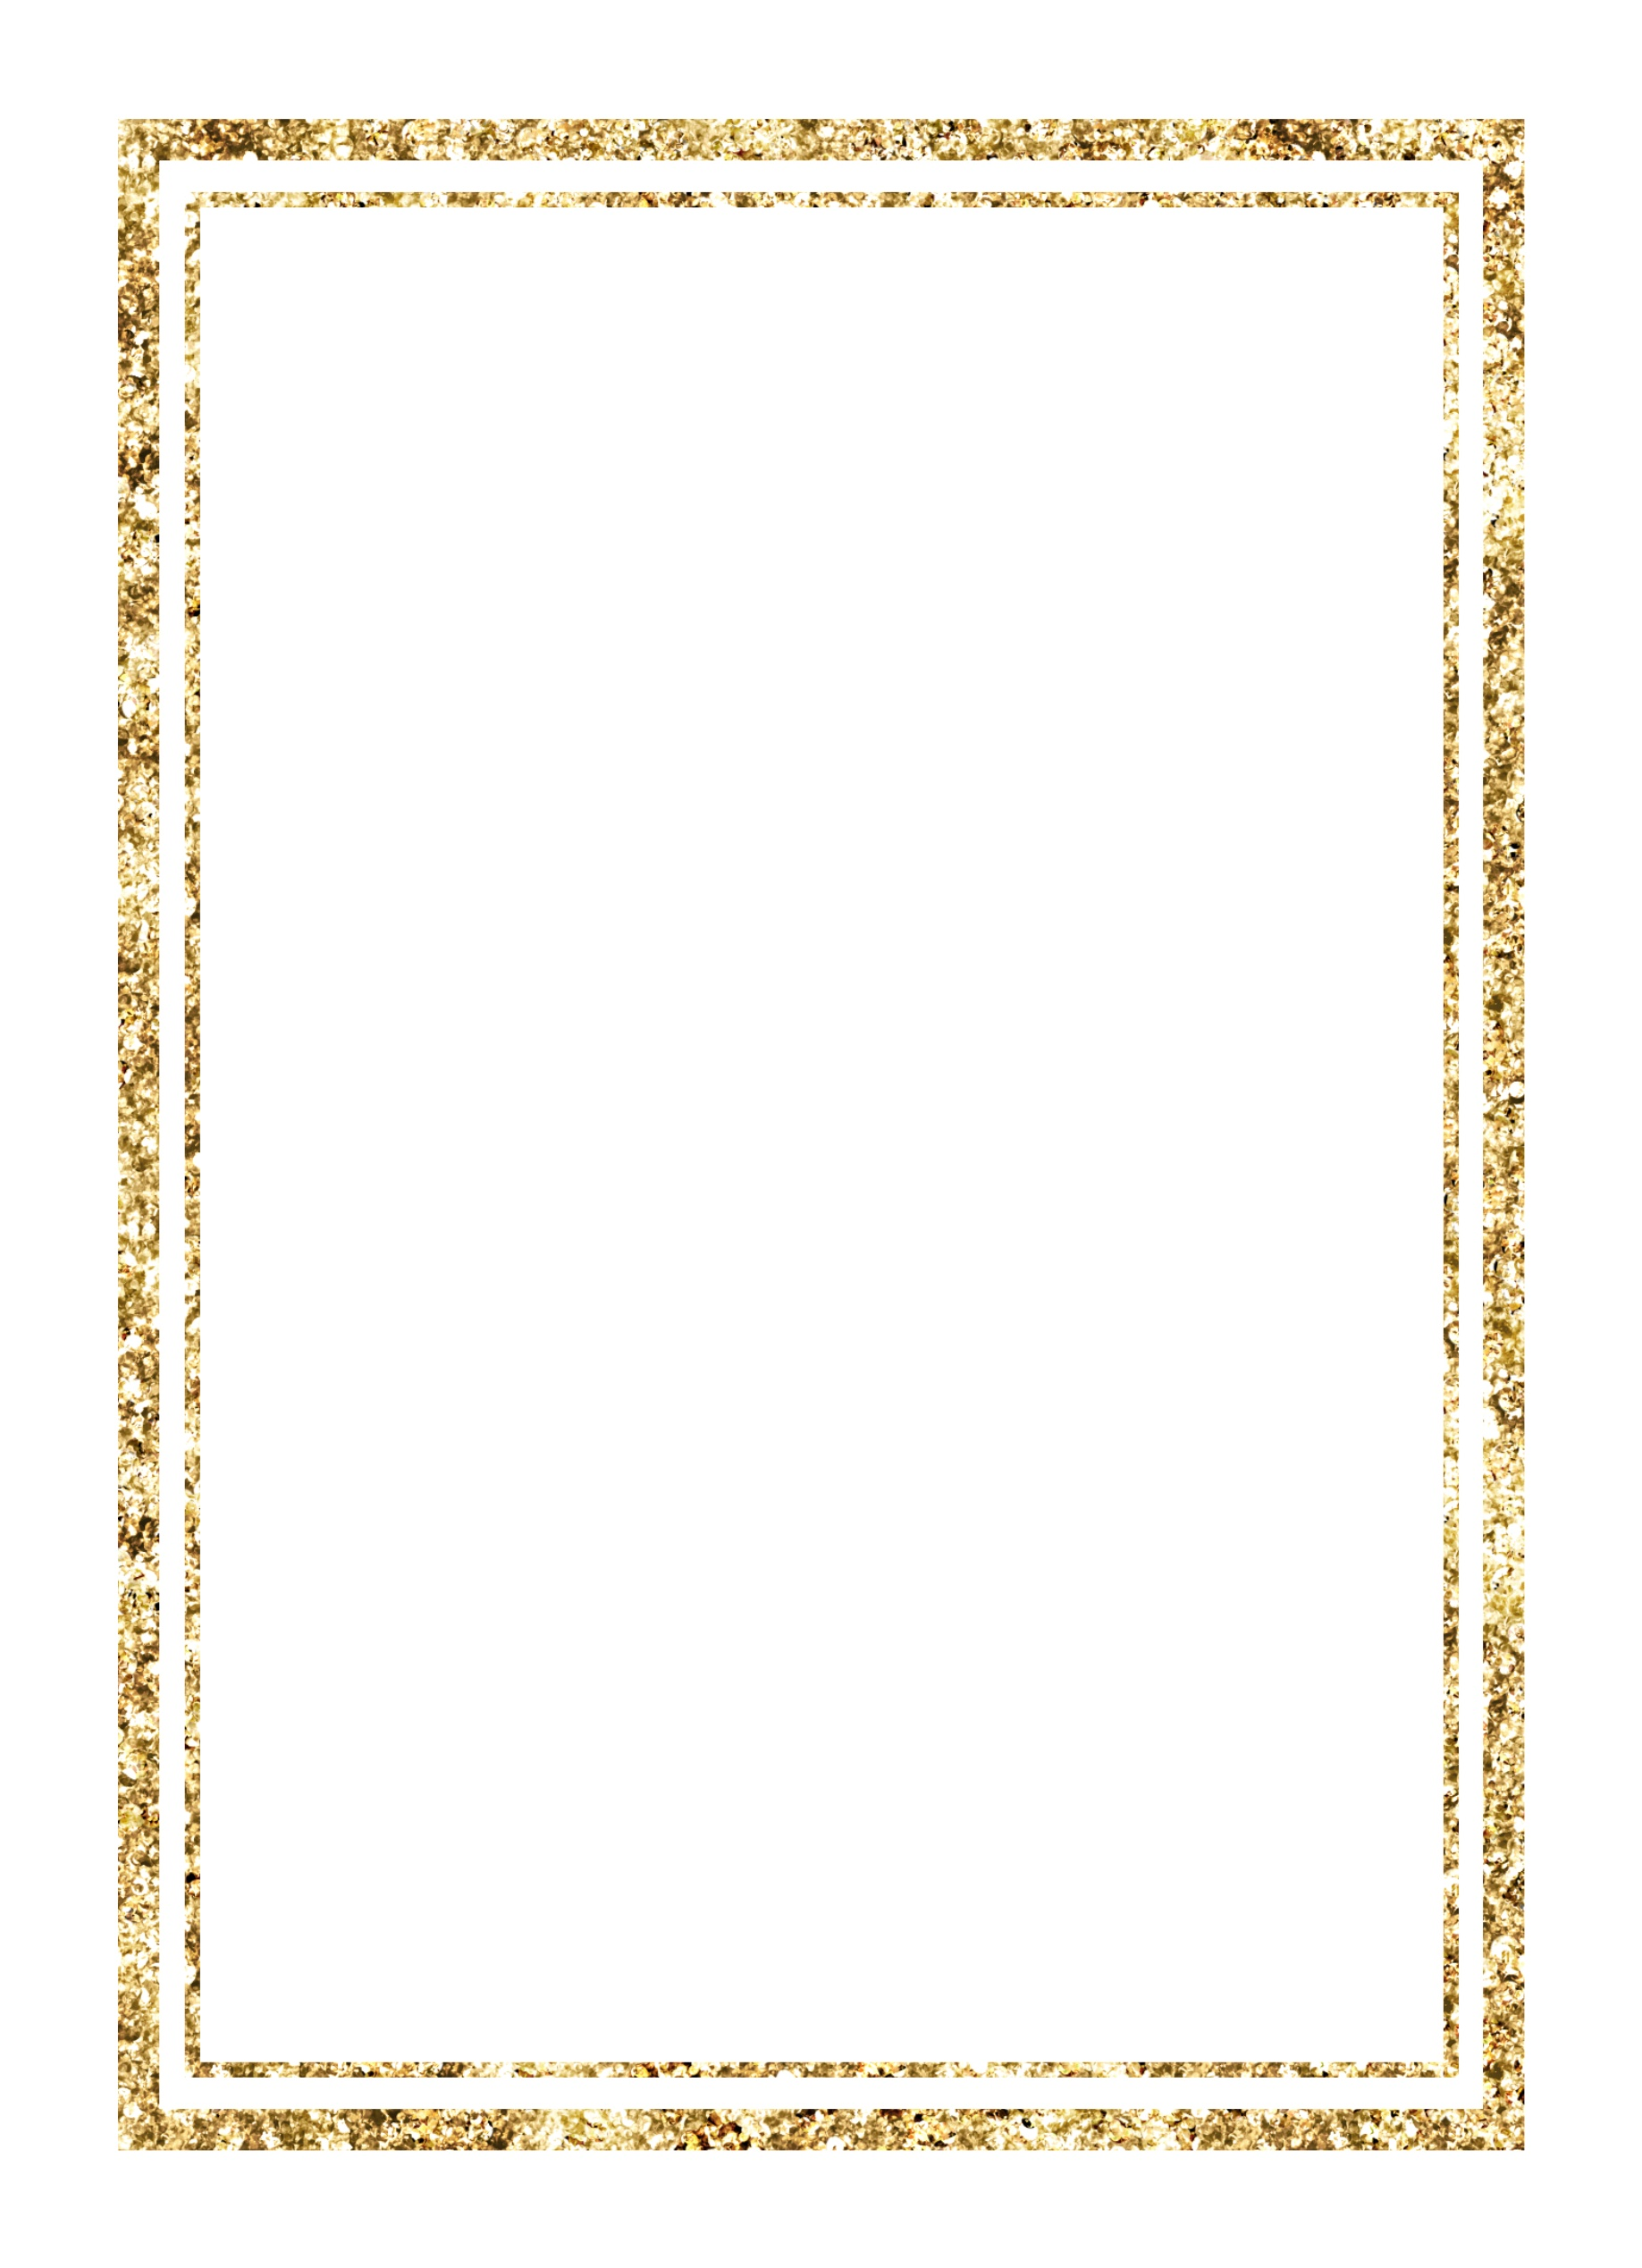 Double Gold Border